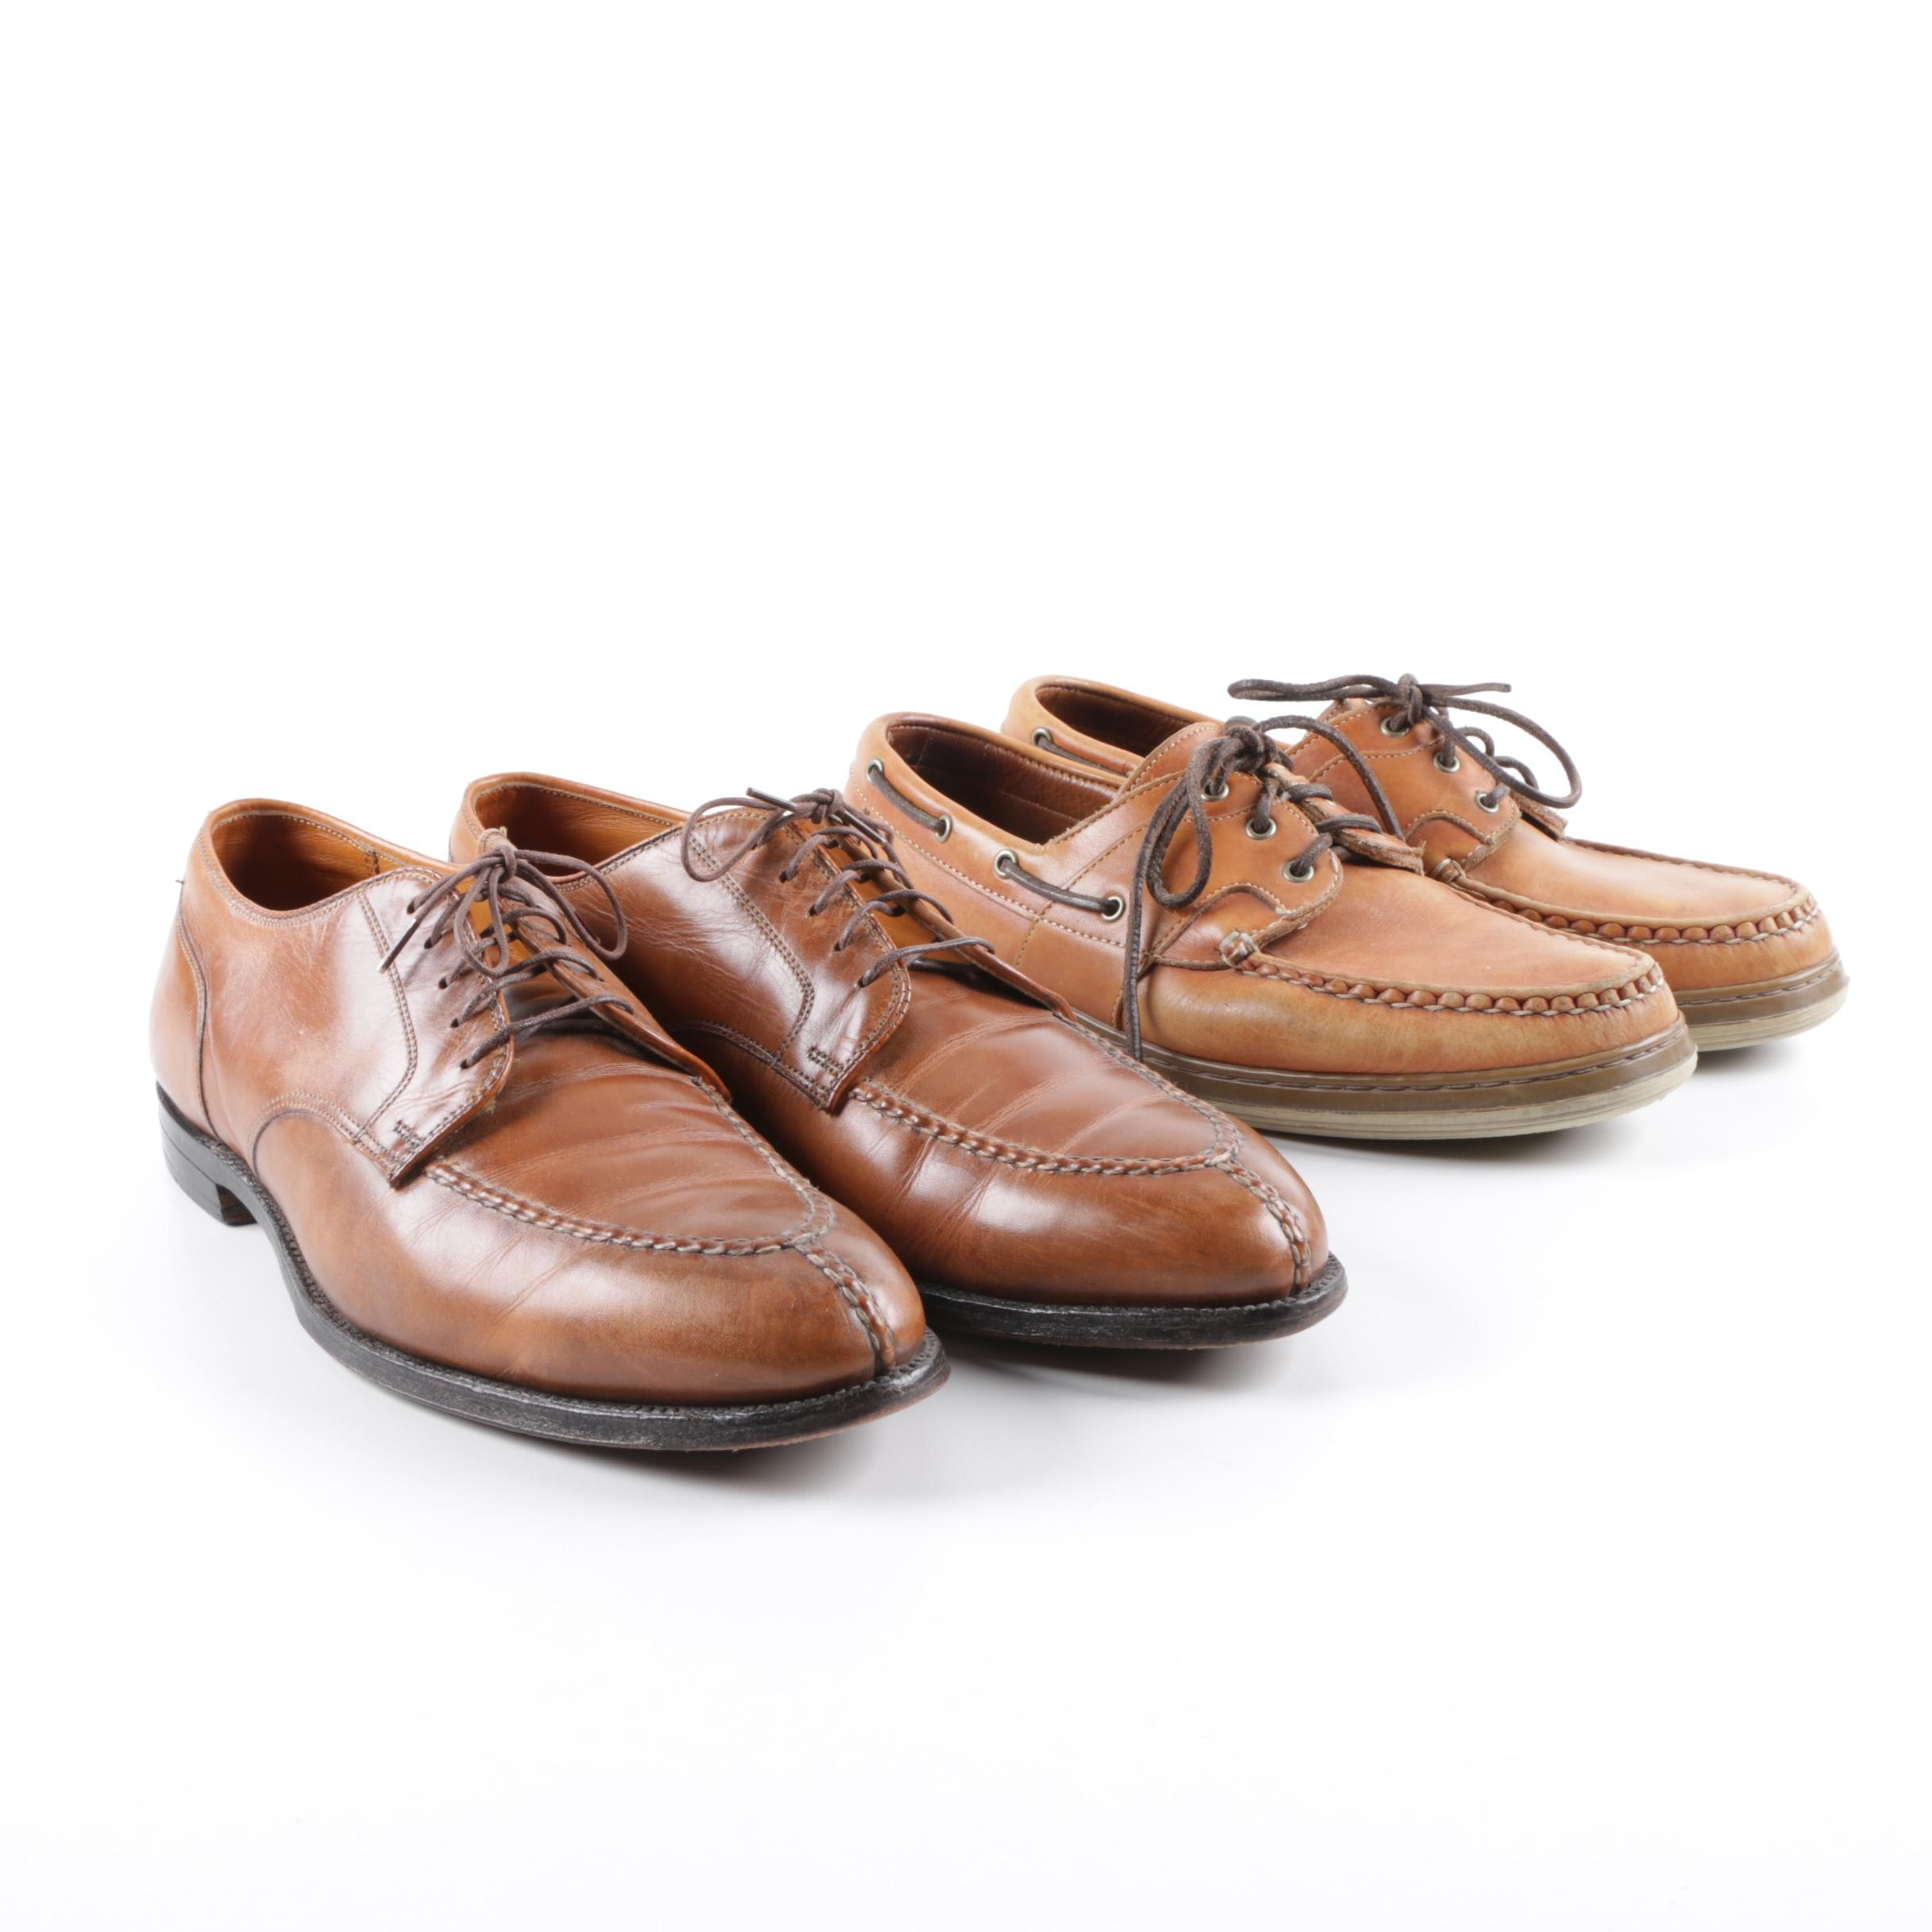 Men's Alden and Allen Edmonds Tan and Brown Leather Dress Shoes